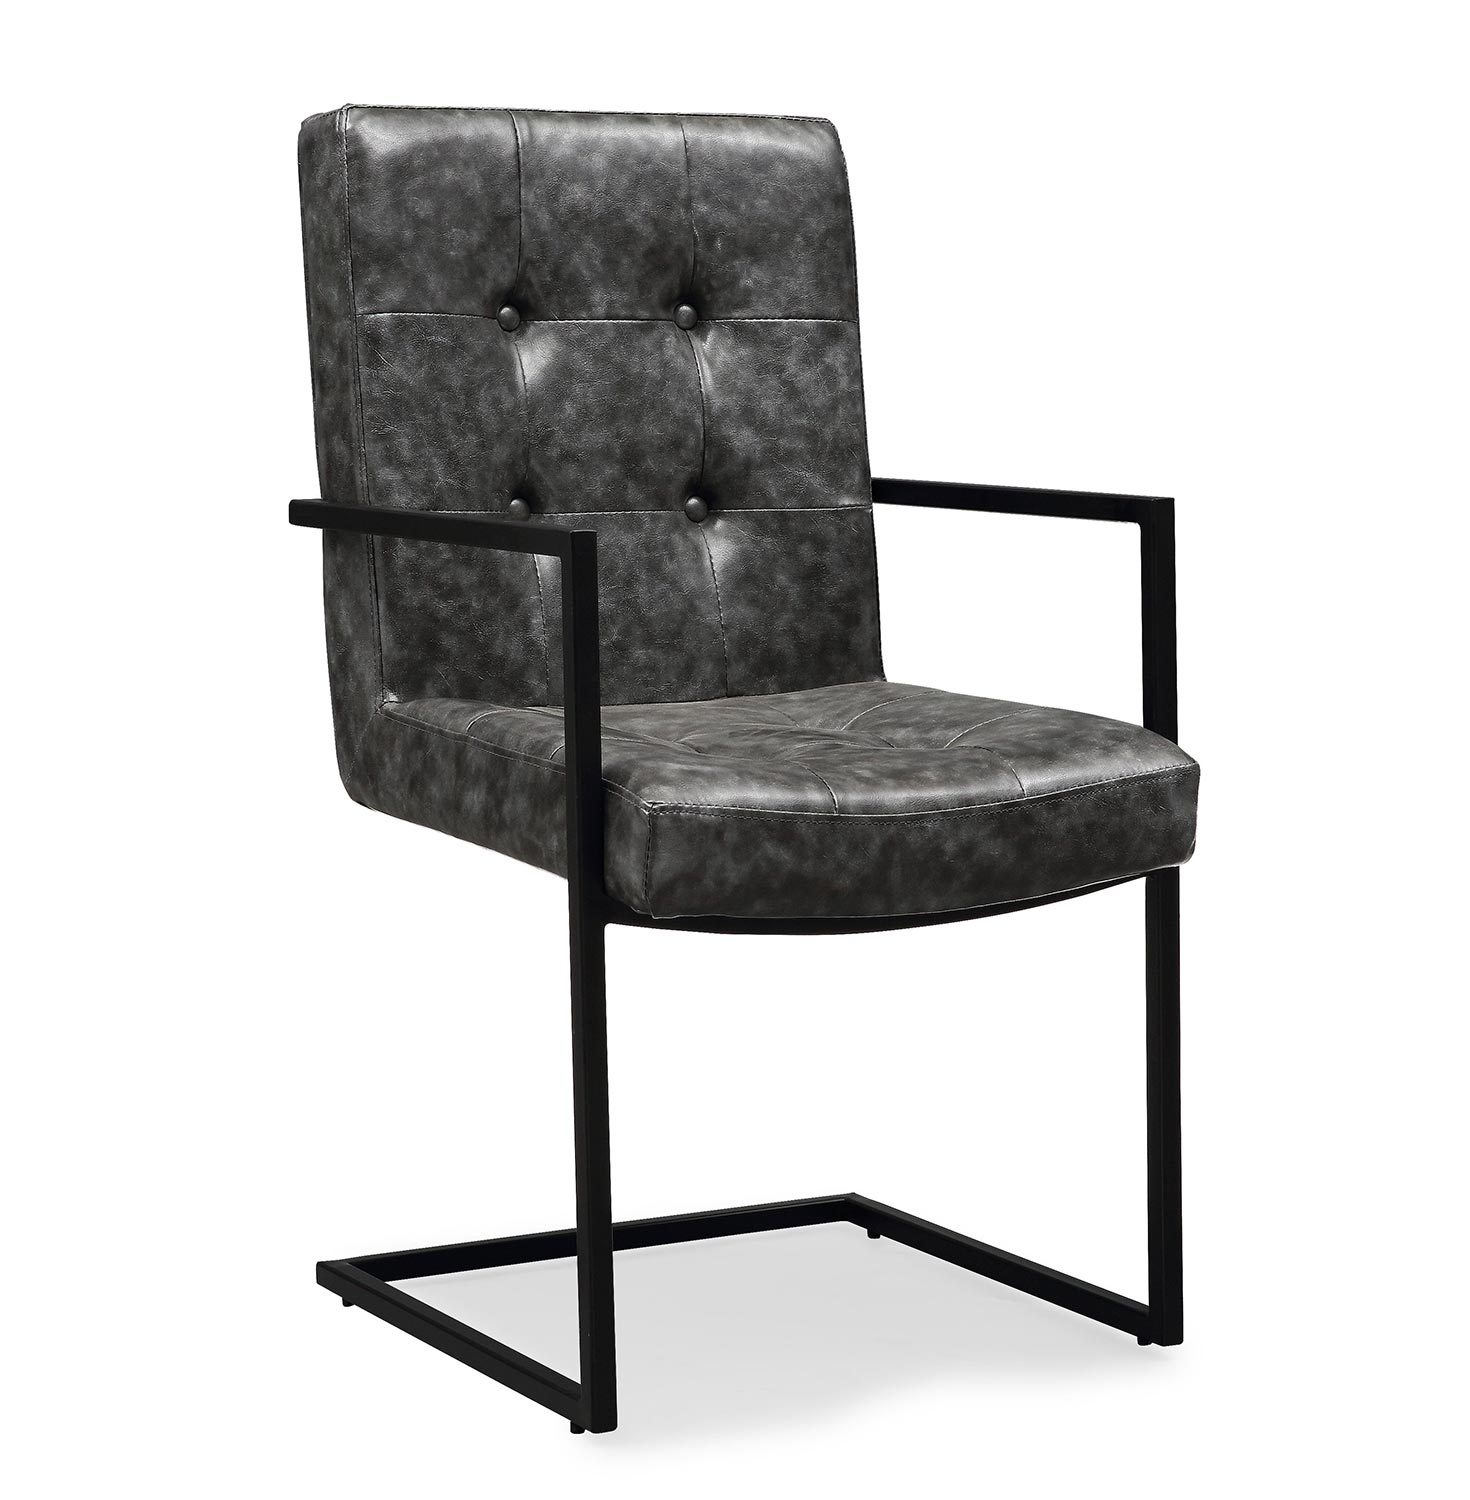 TOV Furniture Stanley Arm Chair - Grey/Black